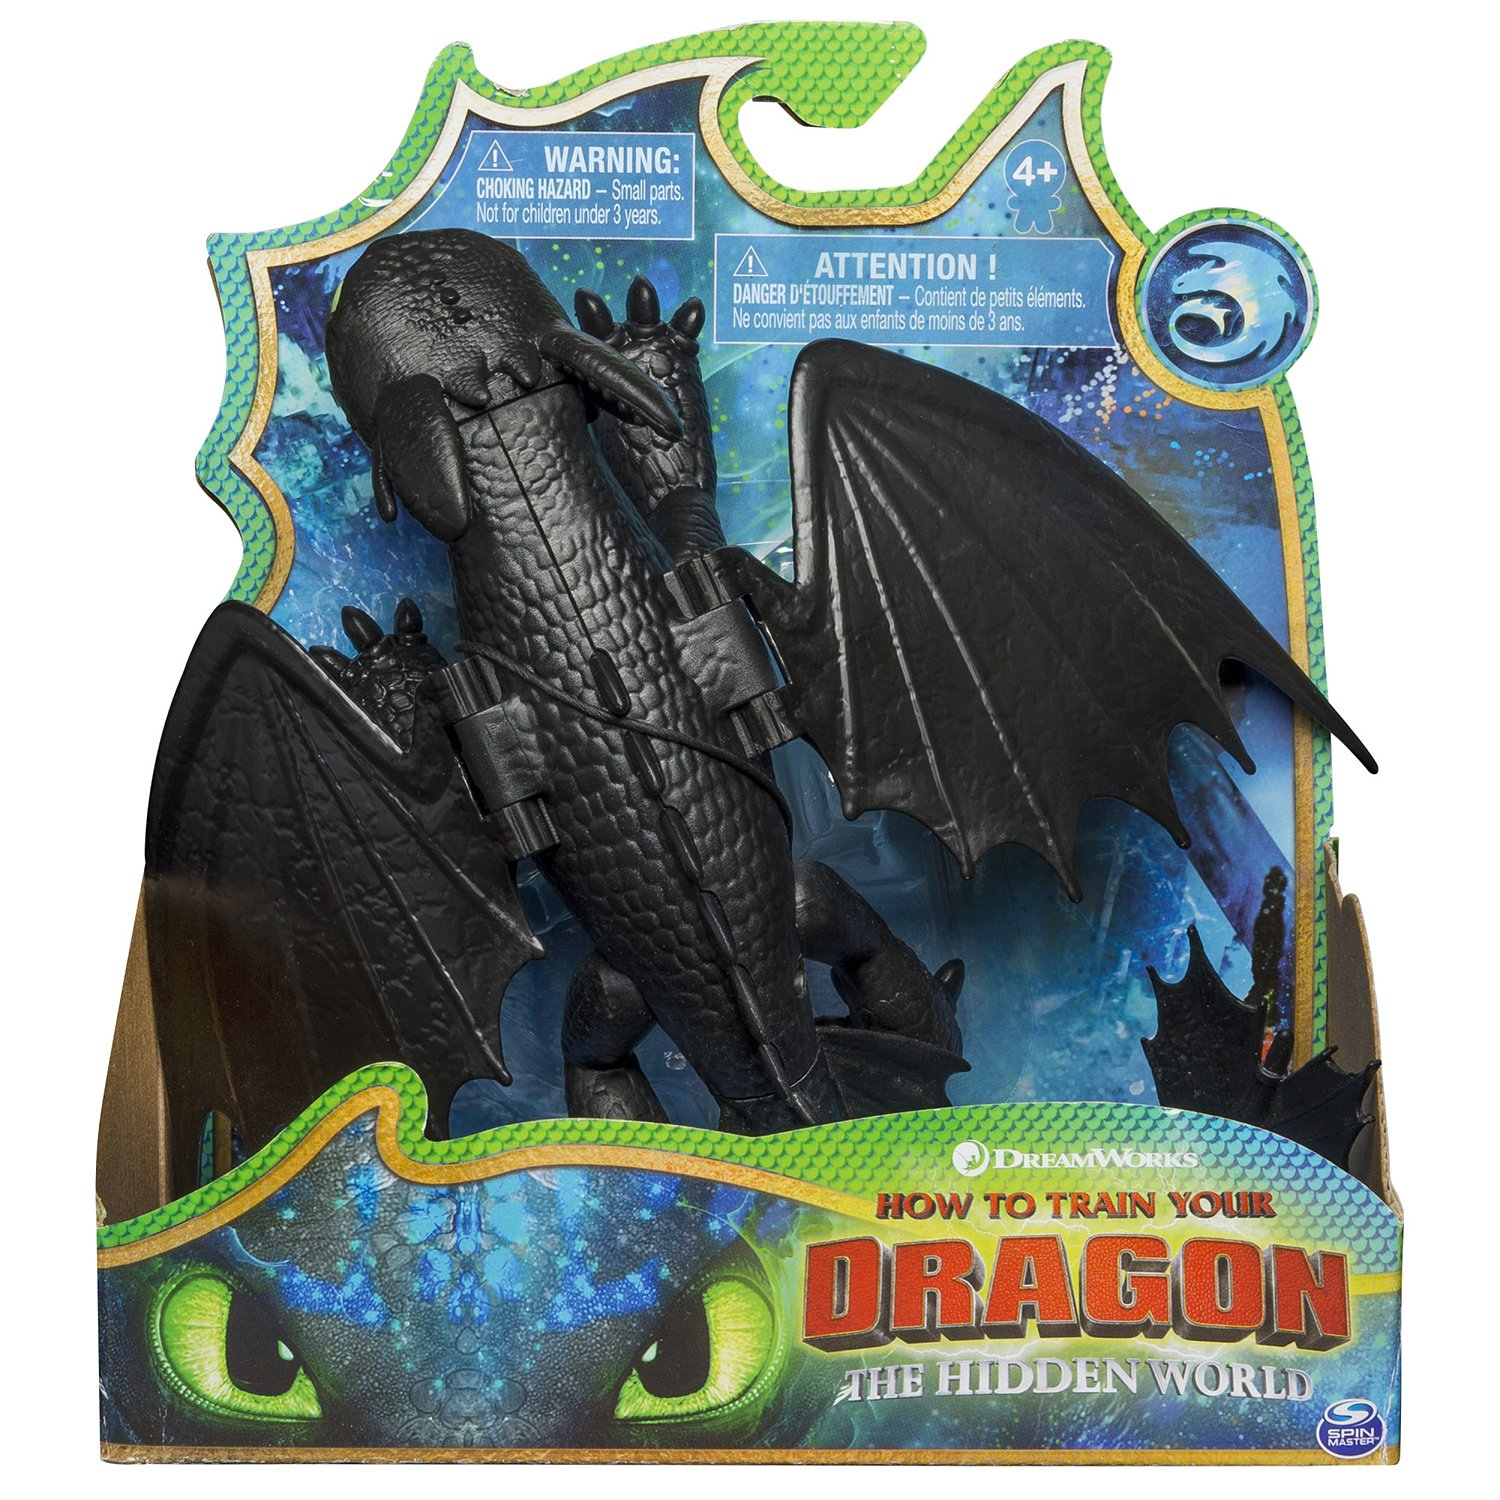 HOW TO TRAIN YOUR DRAGON, BASIC DRAGON ASST